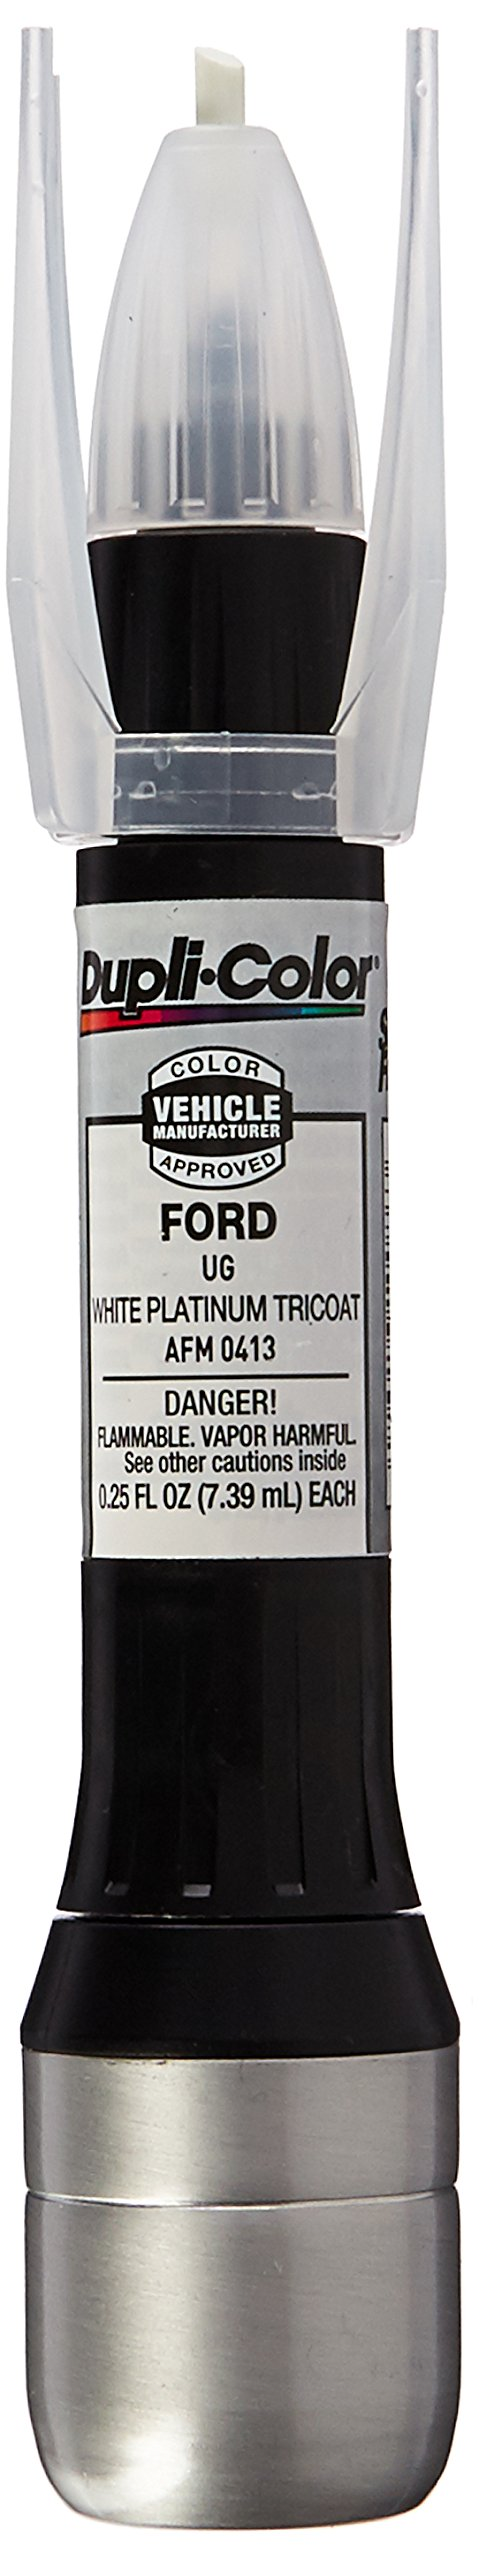 Dupli-Color Tricoat Single EAFM04130 Scratch Fix All-in-1 Exact-Match Automotive Touch-Up Paint, White Platinum Pearl UG.25 Ounce